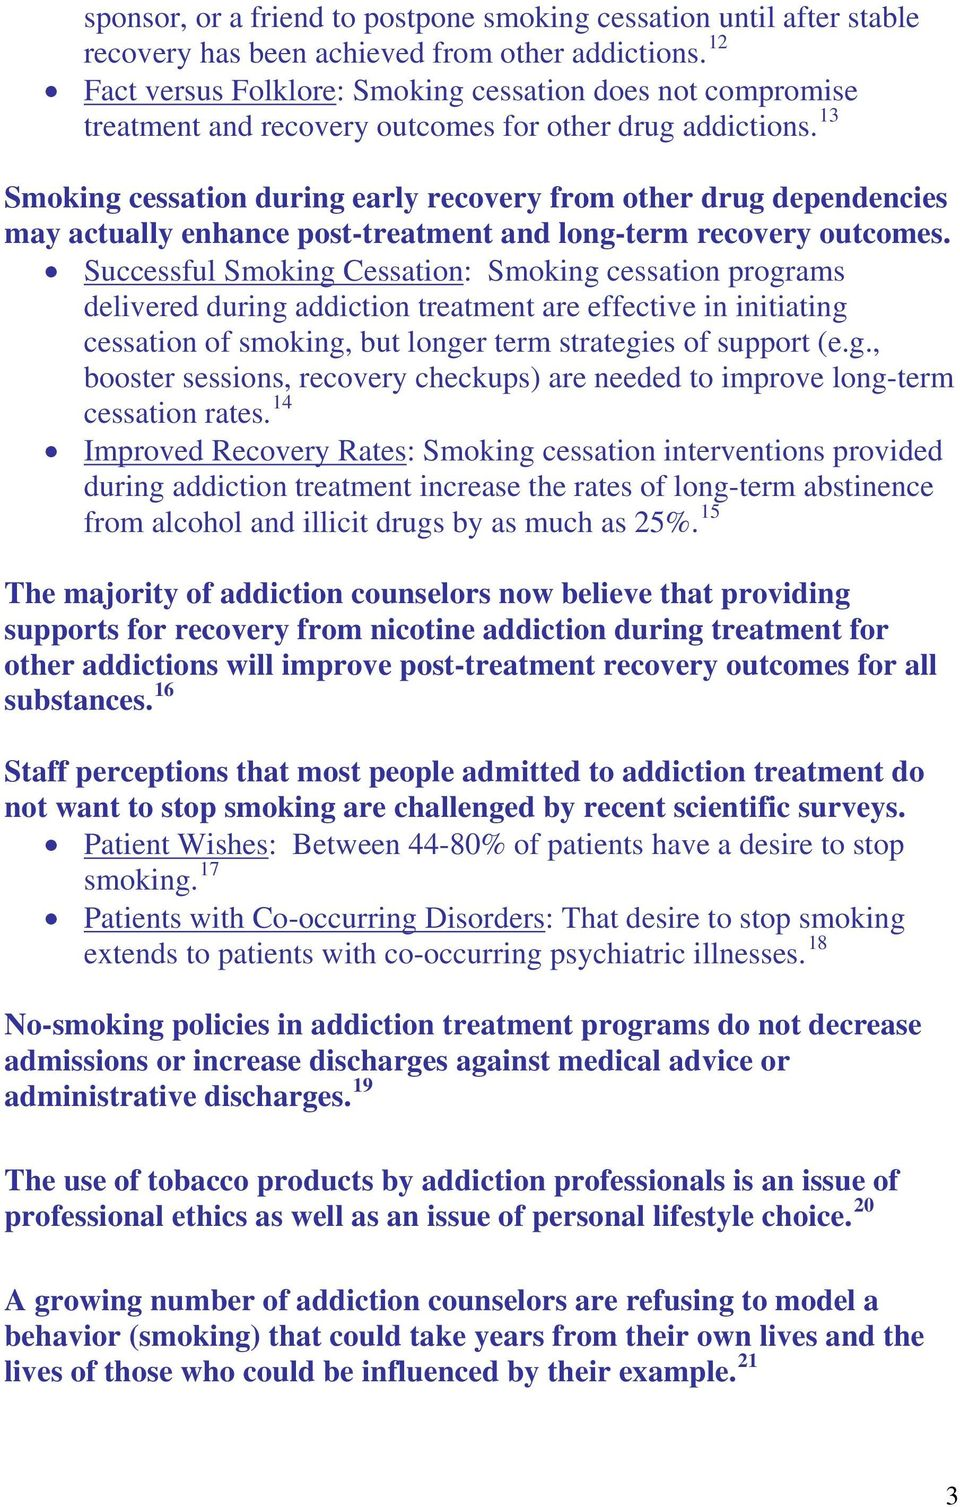 13 Smoking cessation during early recovery from other drug dependencies may actually enhance post-treatment and long-term recovery outcomes.